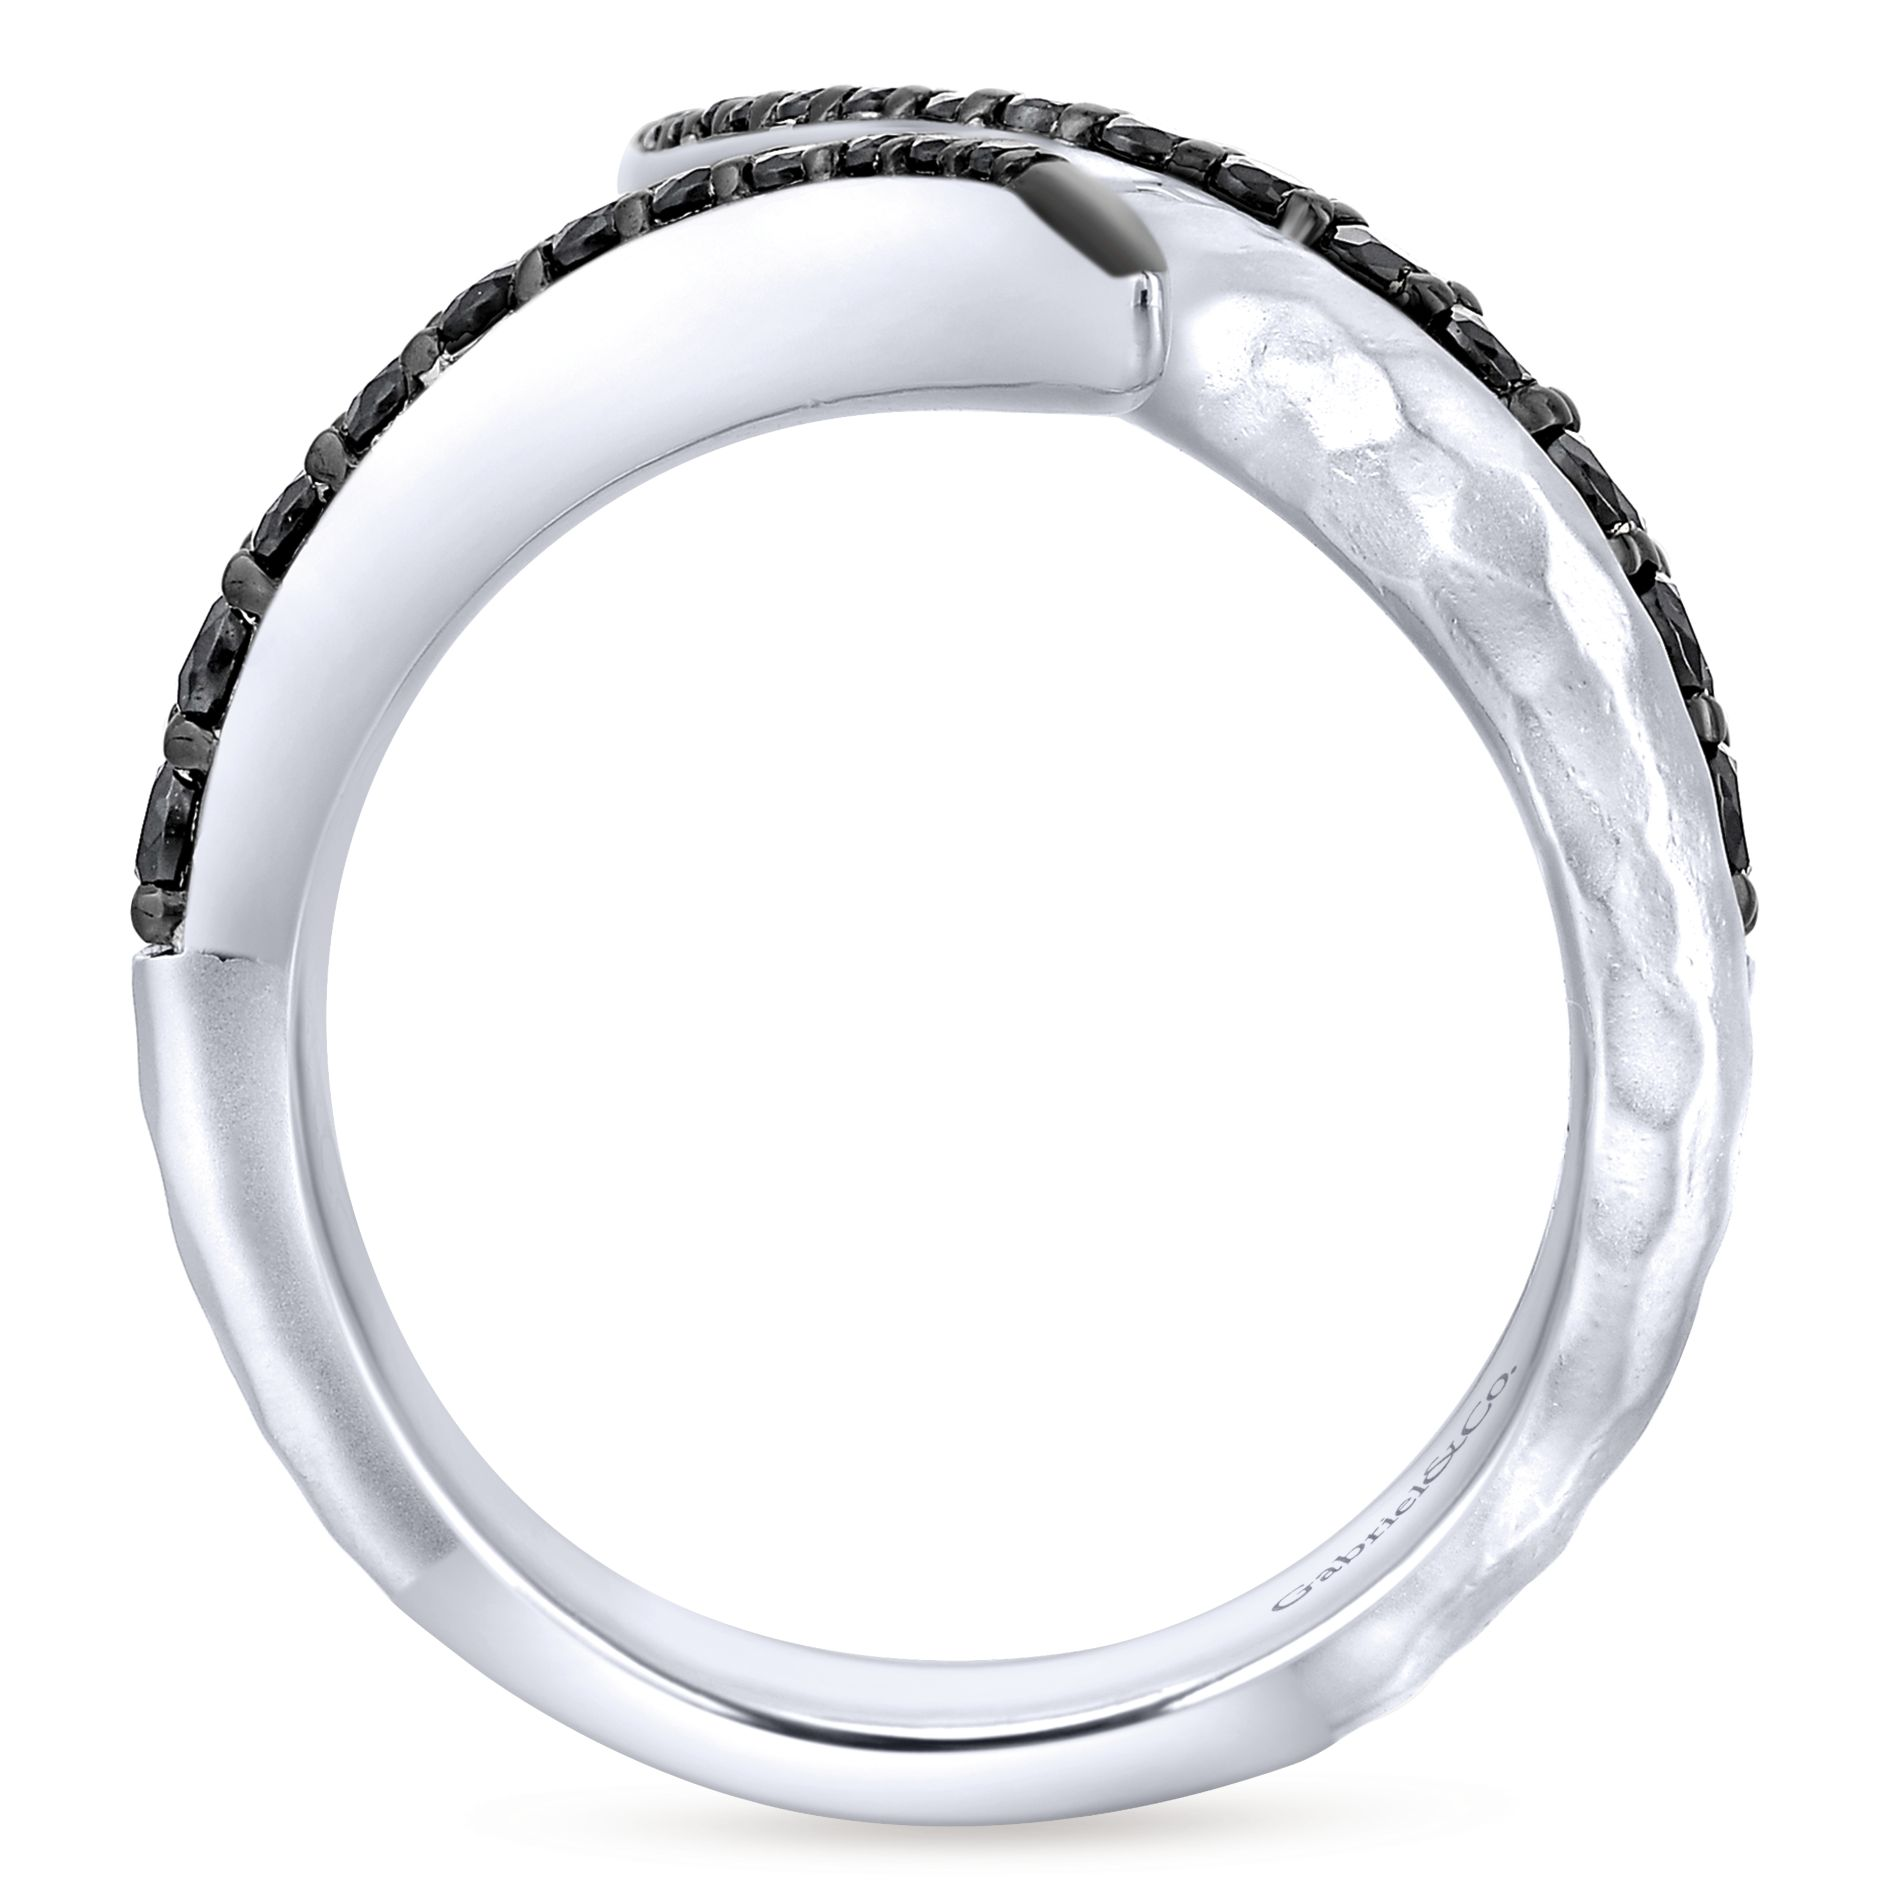 Rings - SILVER FASHION BLACK SPINEL LADIES RING - image #2